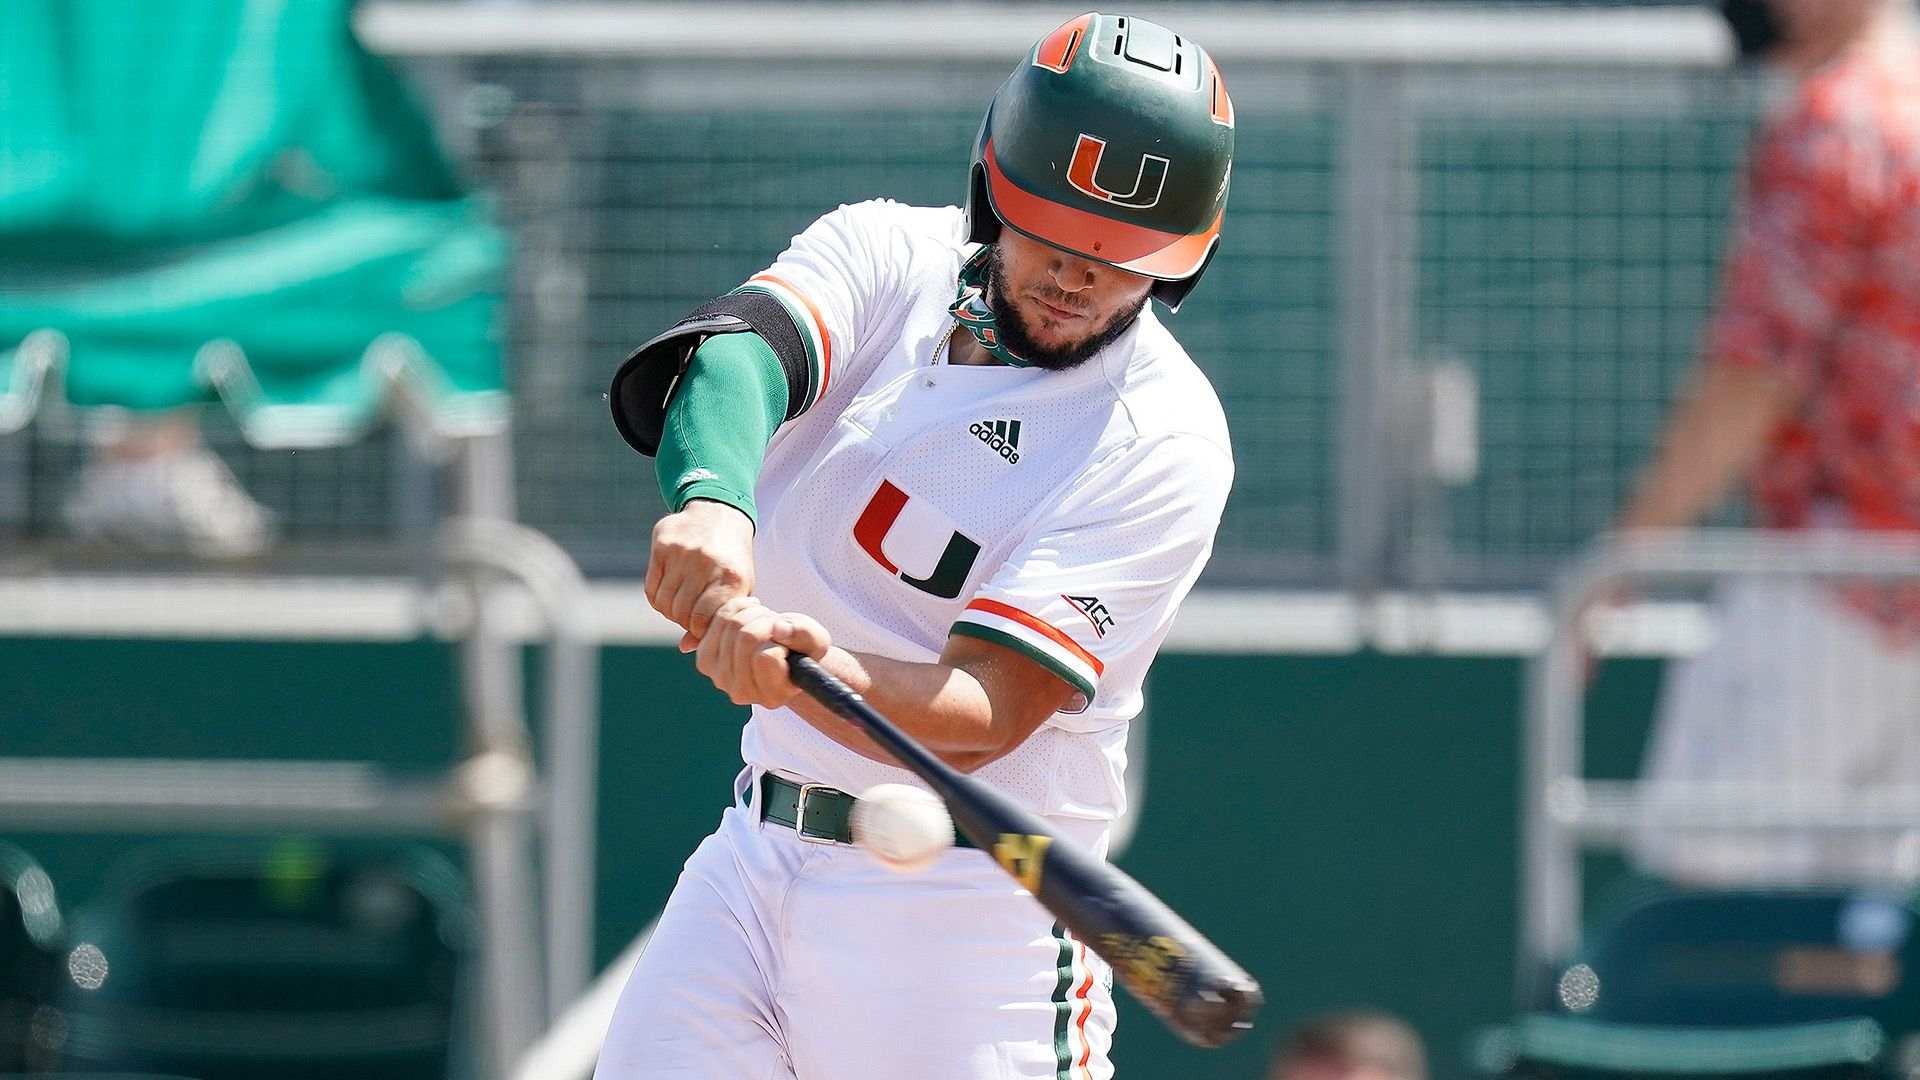 Canes Looking for Consistency at NC State